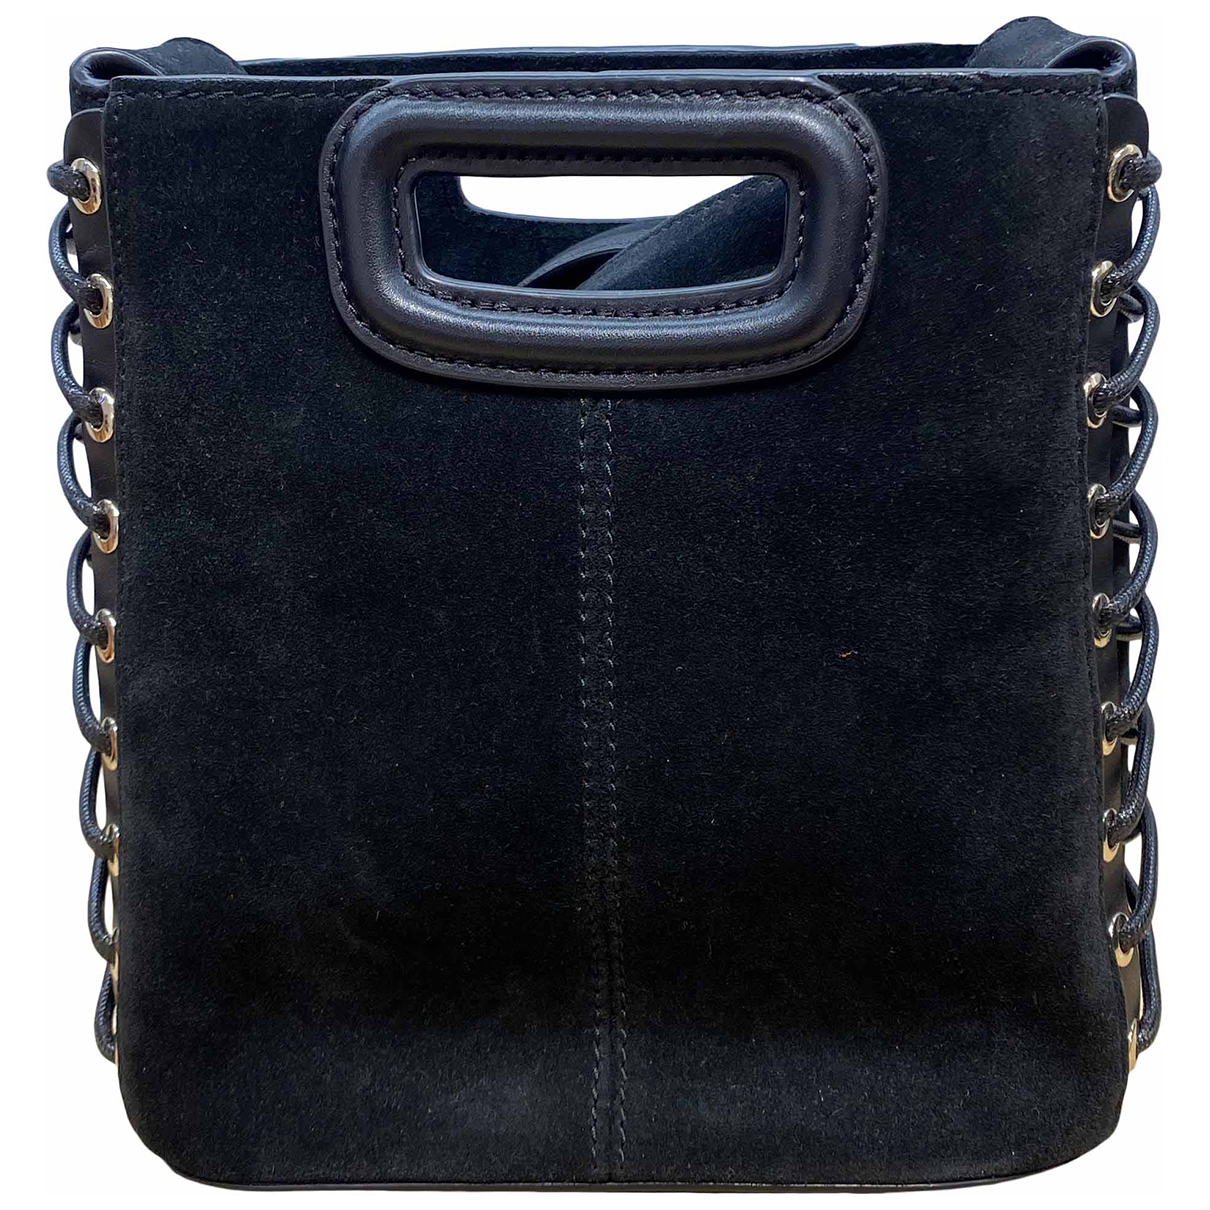 Maje Sac M Clutch in  Schwarz Leder